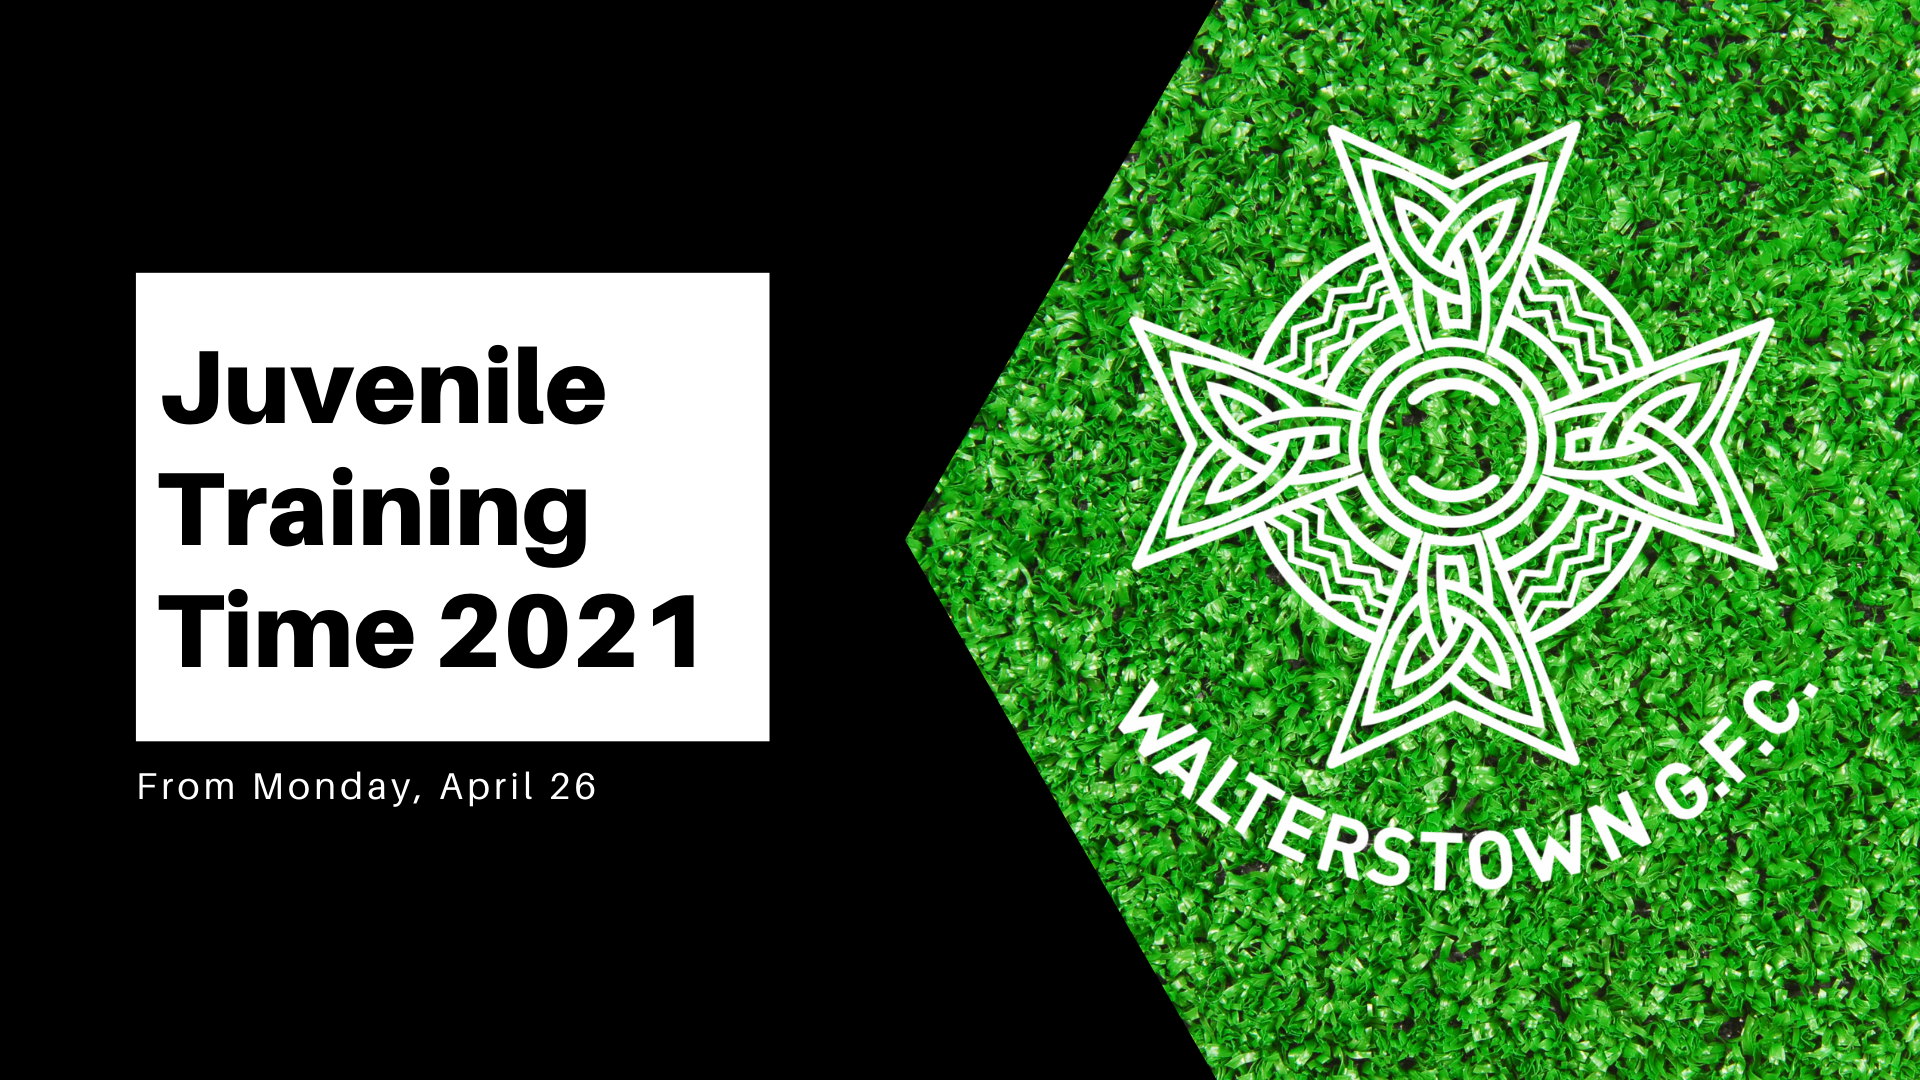 Juvenile Training Times 2021